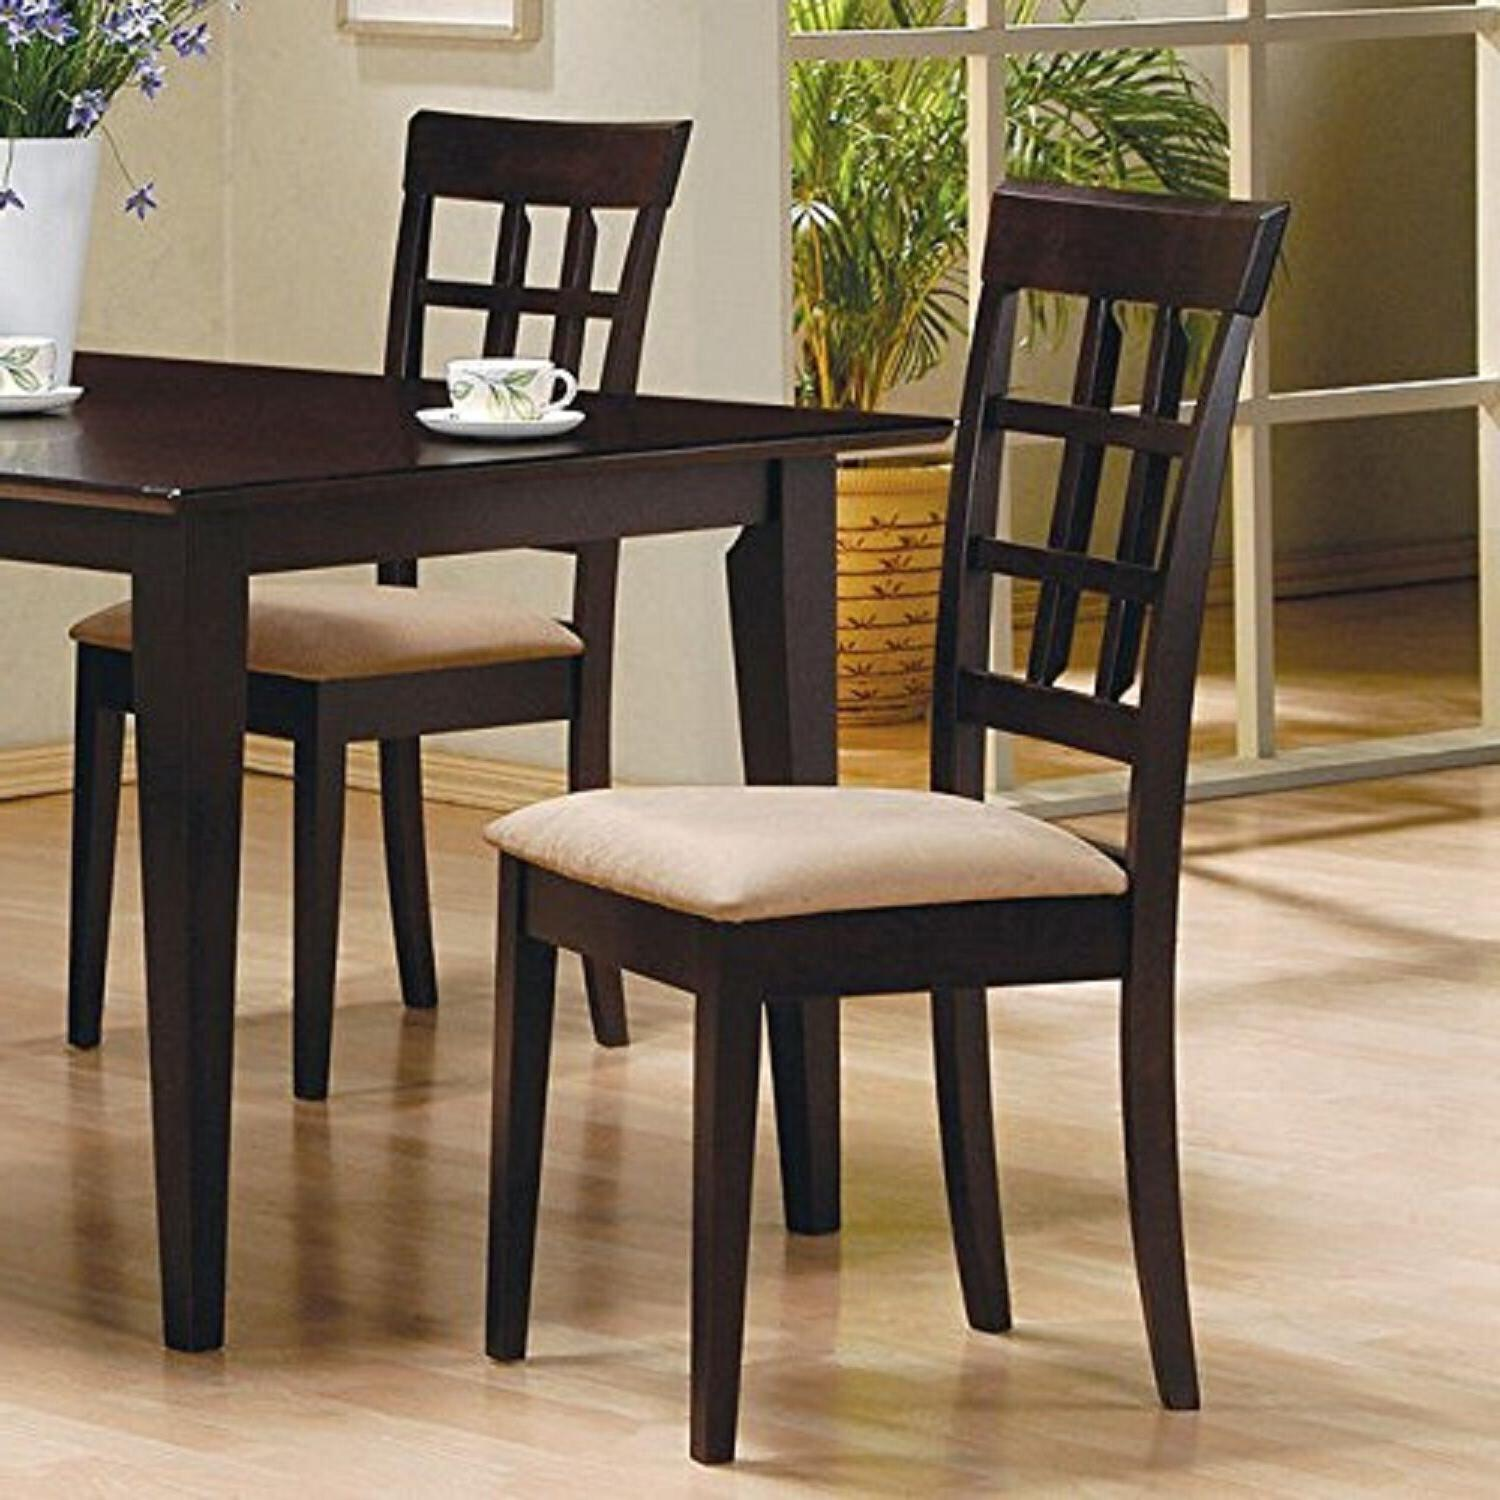 Dining Chair Set 2 Wood Seat New